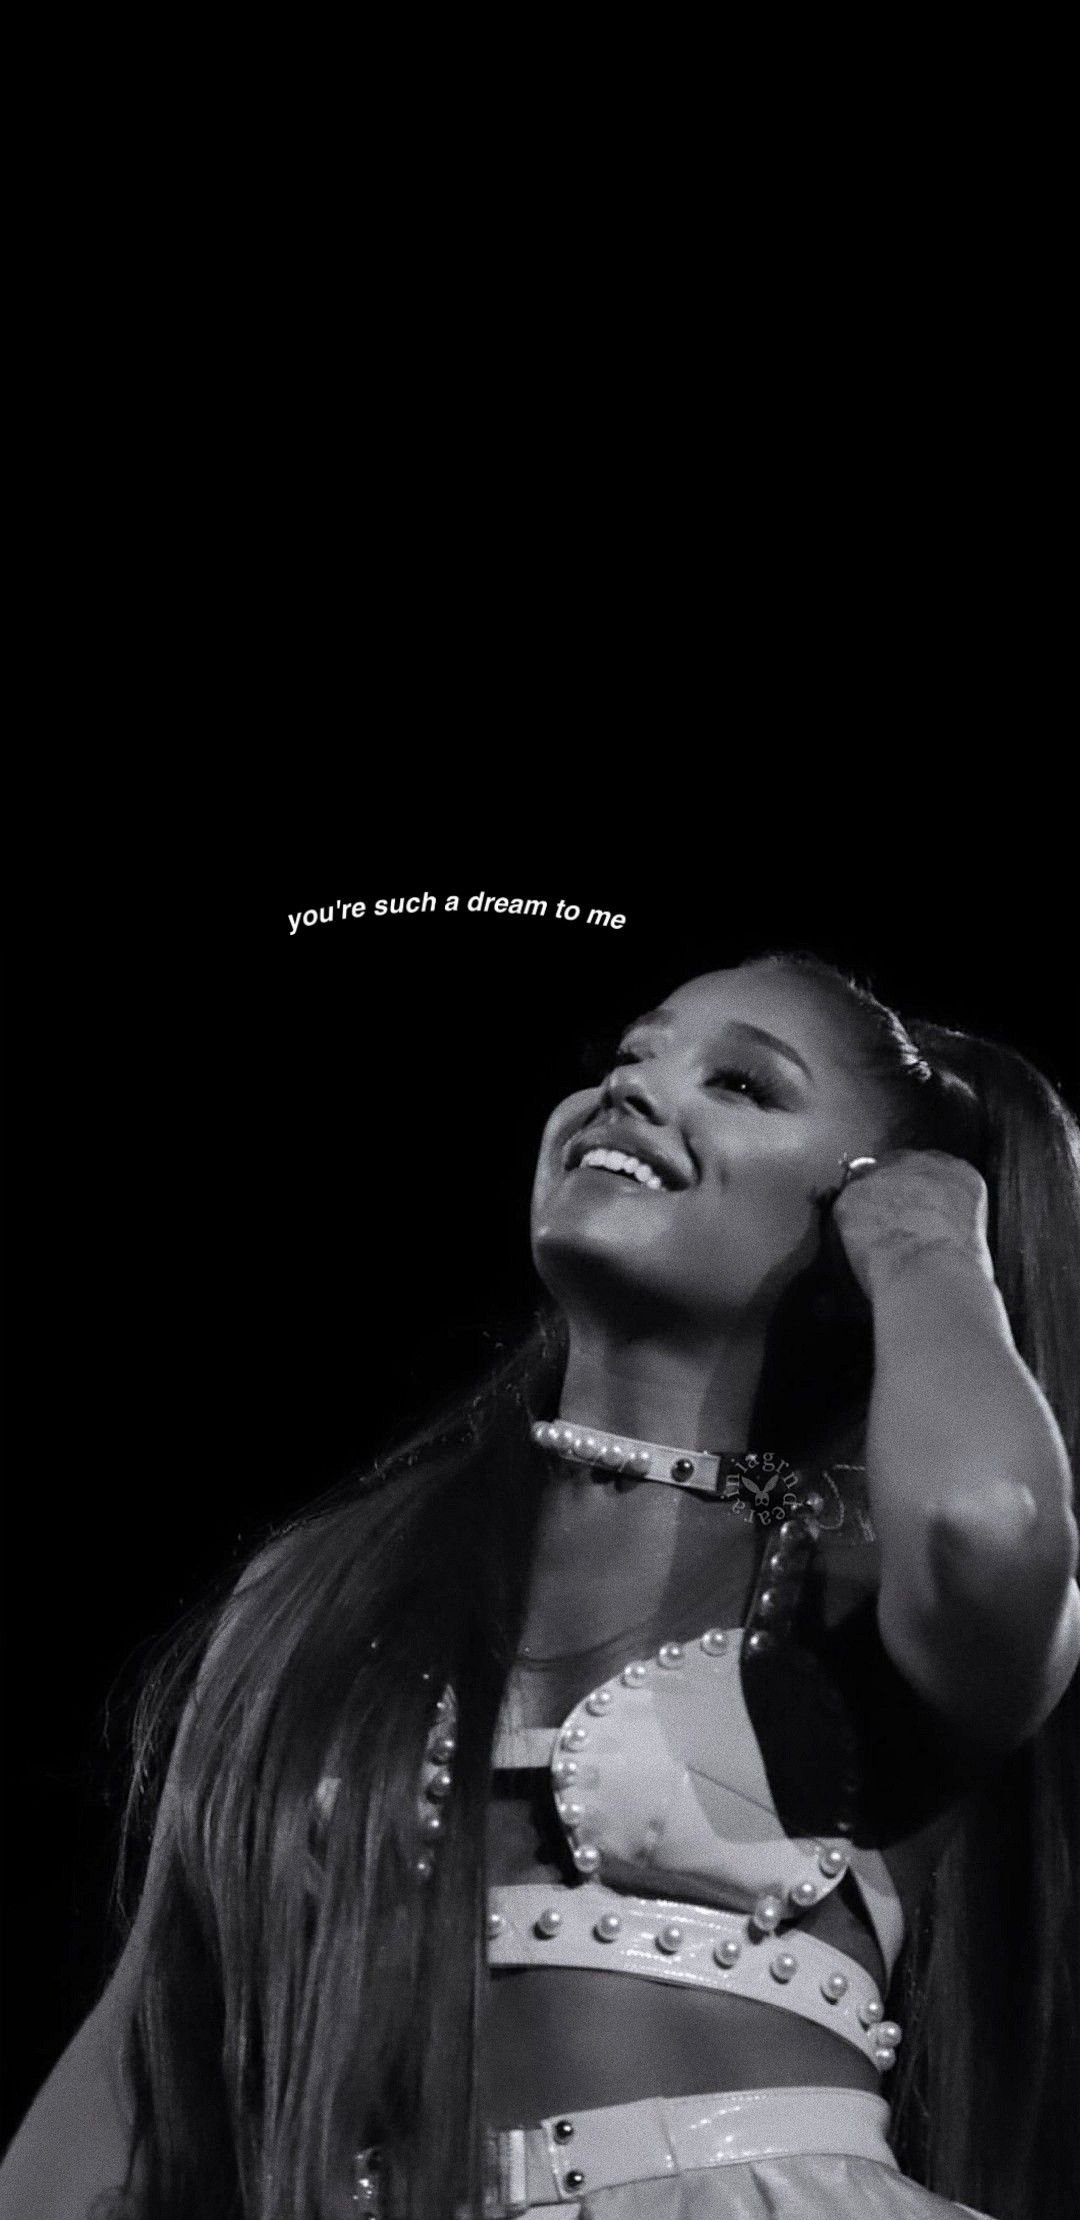 Best Pin By Ariana Grande Wallpapers On Ariana Wallpapers 400 x 300